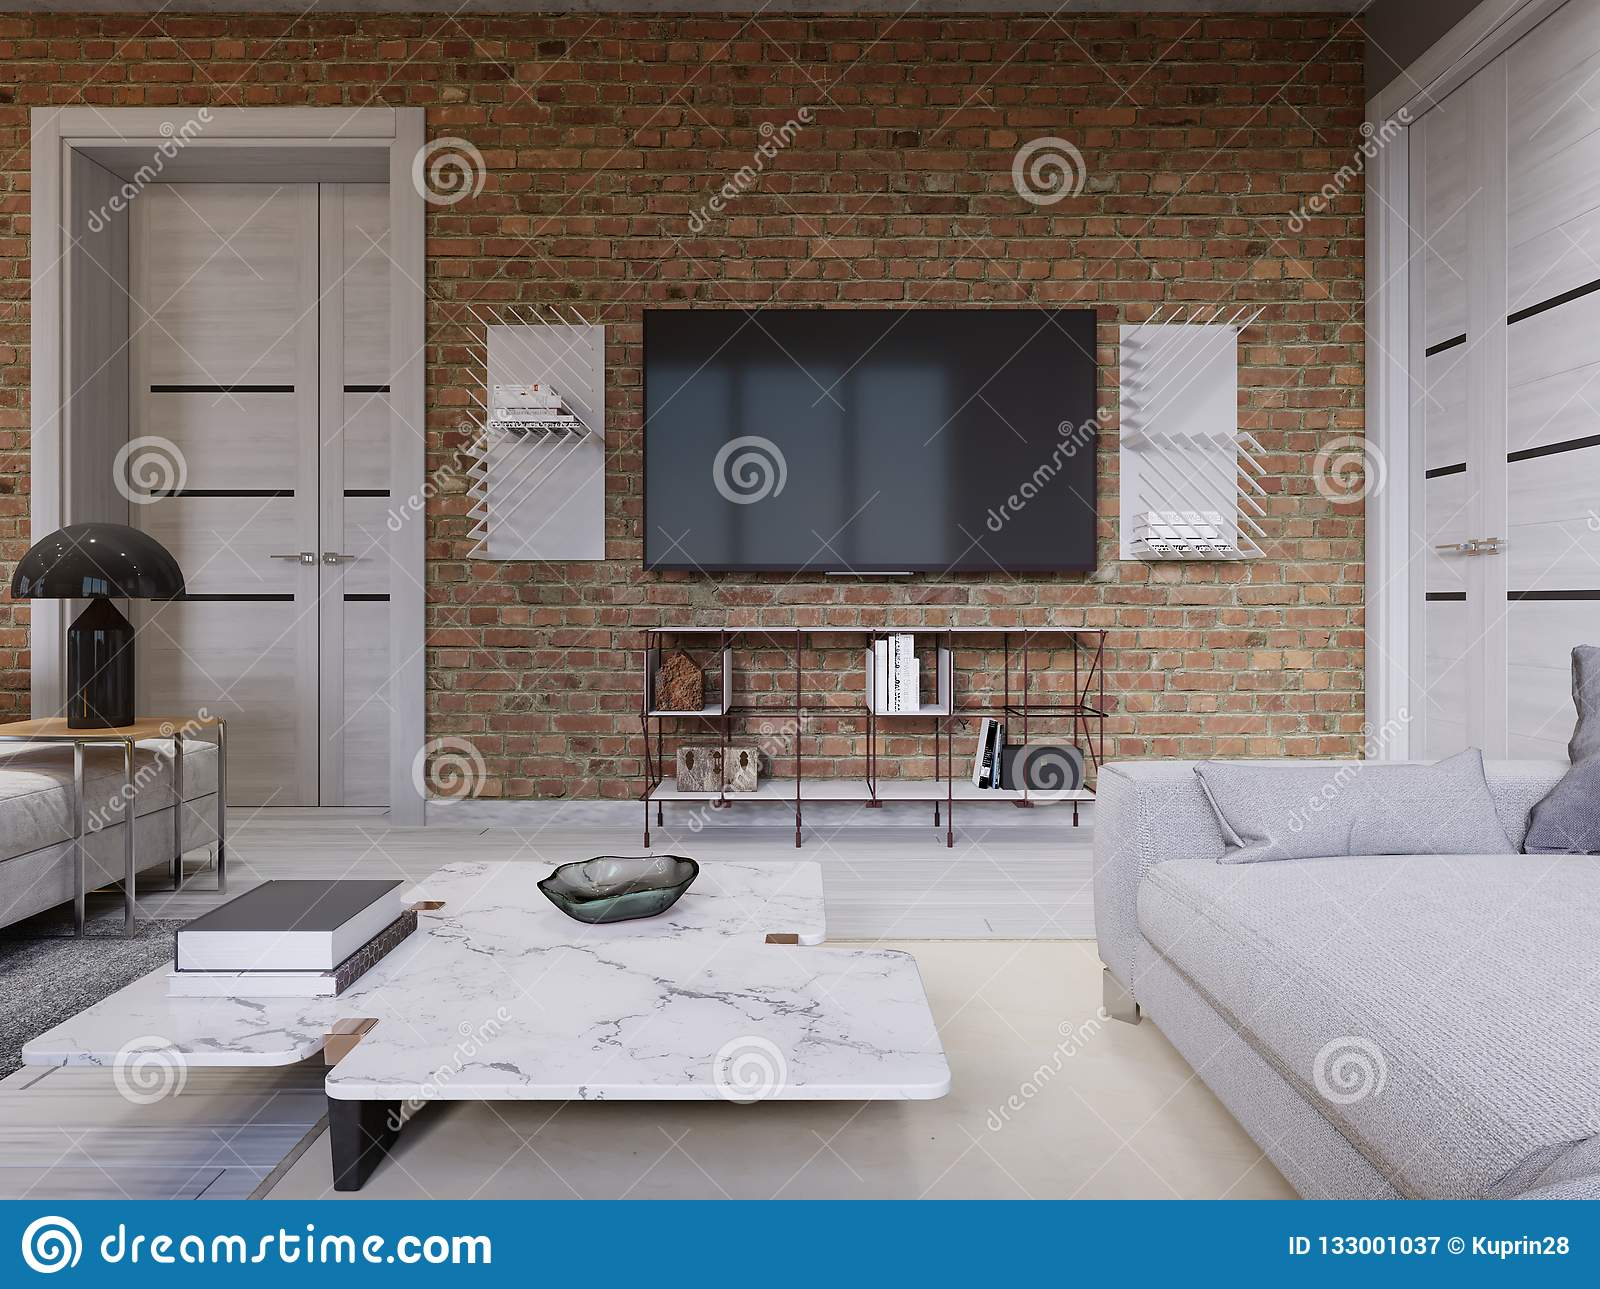 Led Tv With Tv Stand On The Background Brick Wall In Loft Apartment Living Room Stock Illustration Illustration Of Equipment Contemporary 133001037